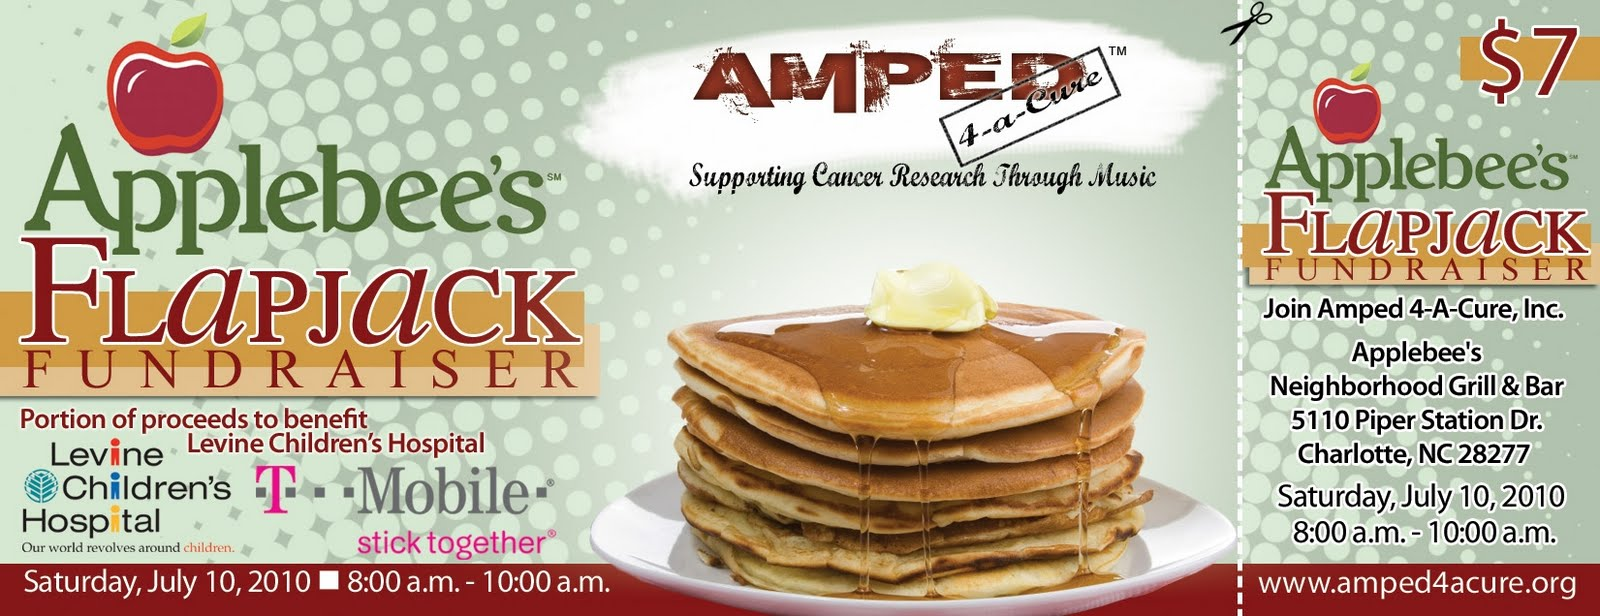 social media and mobile marketing  flapjack fundraiser to